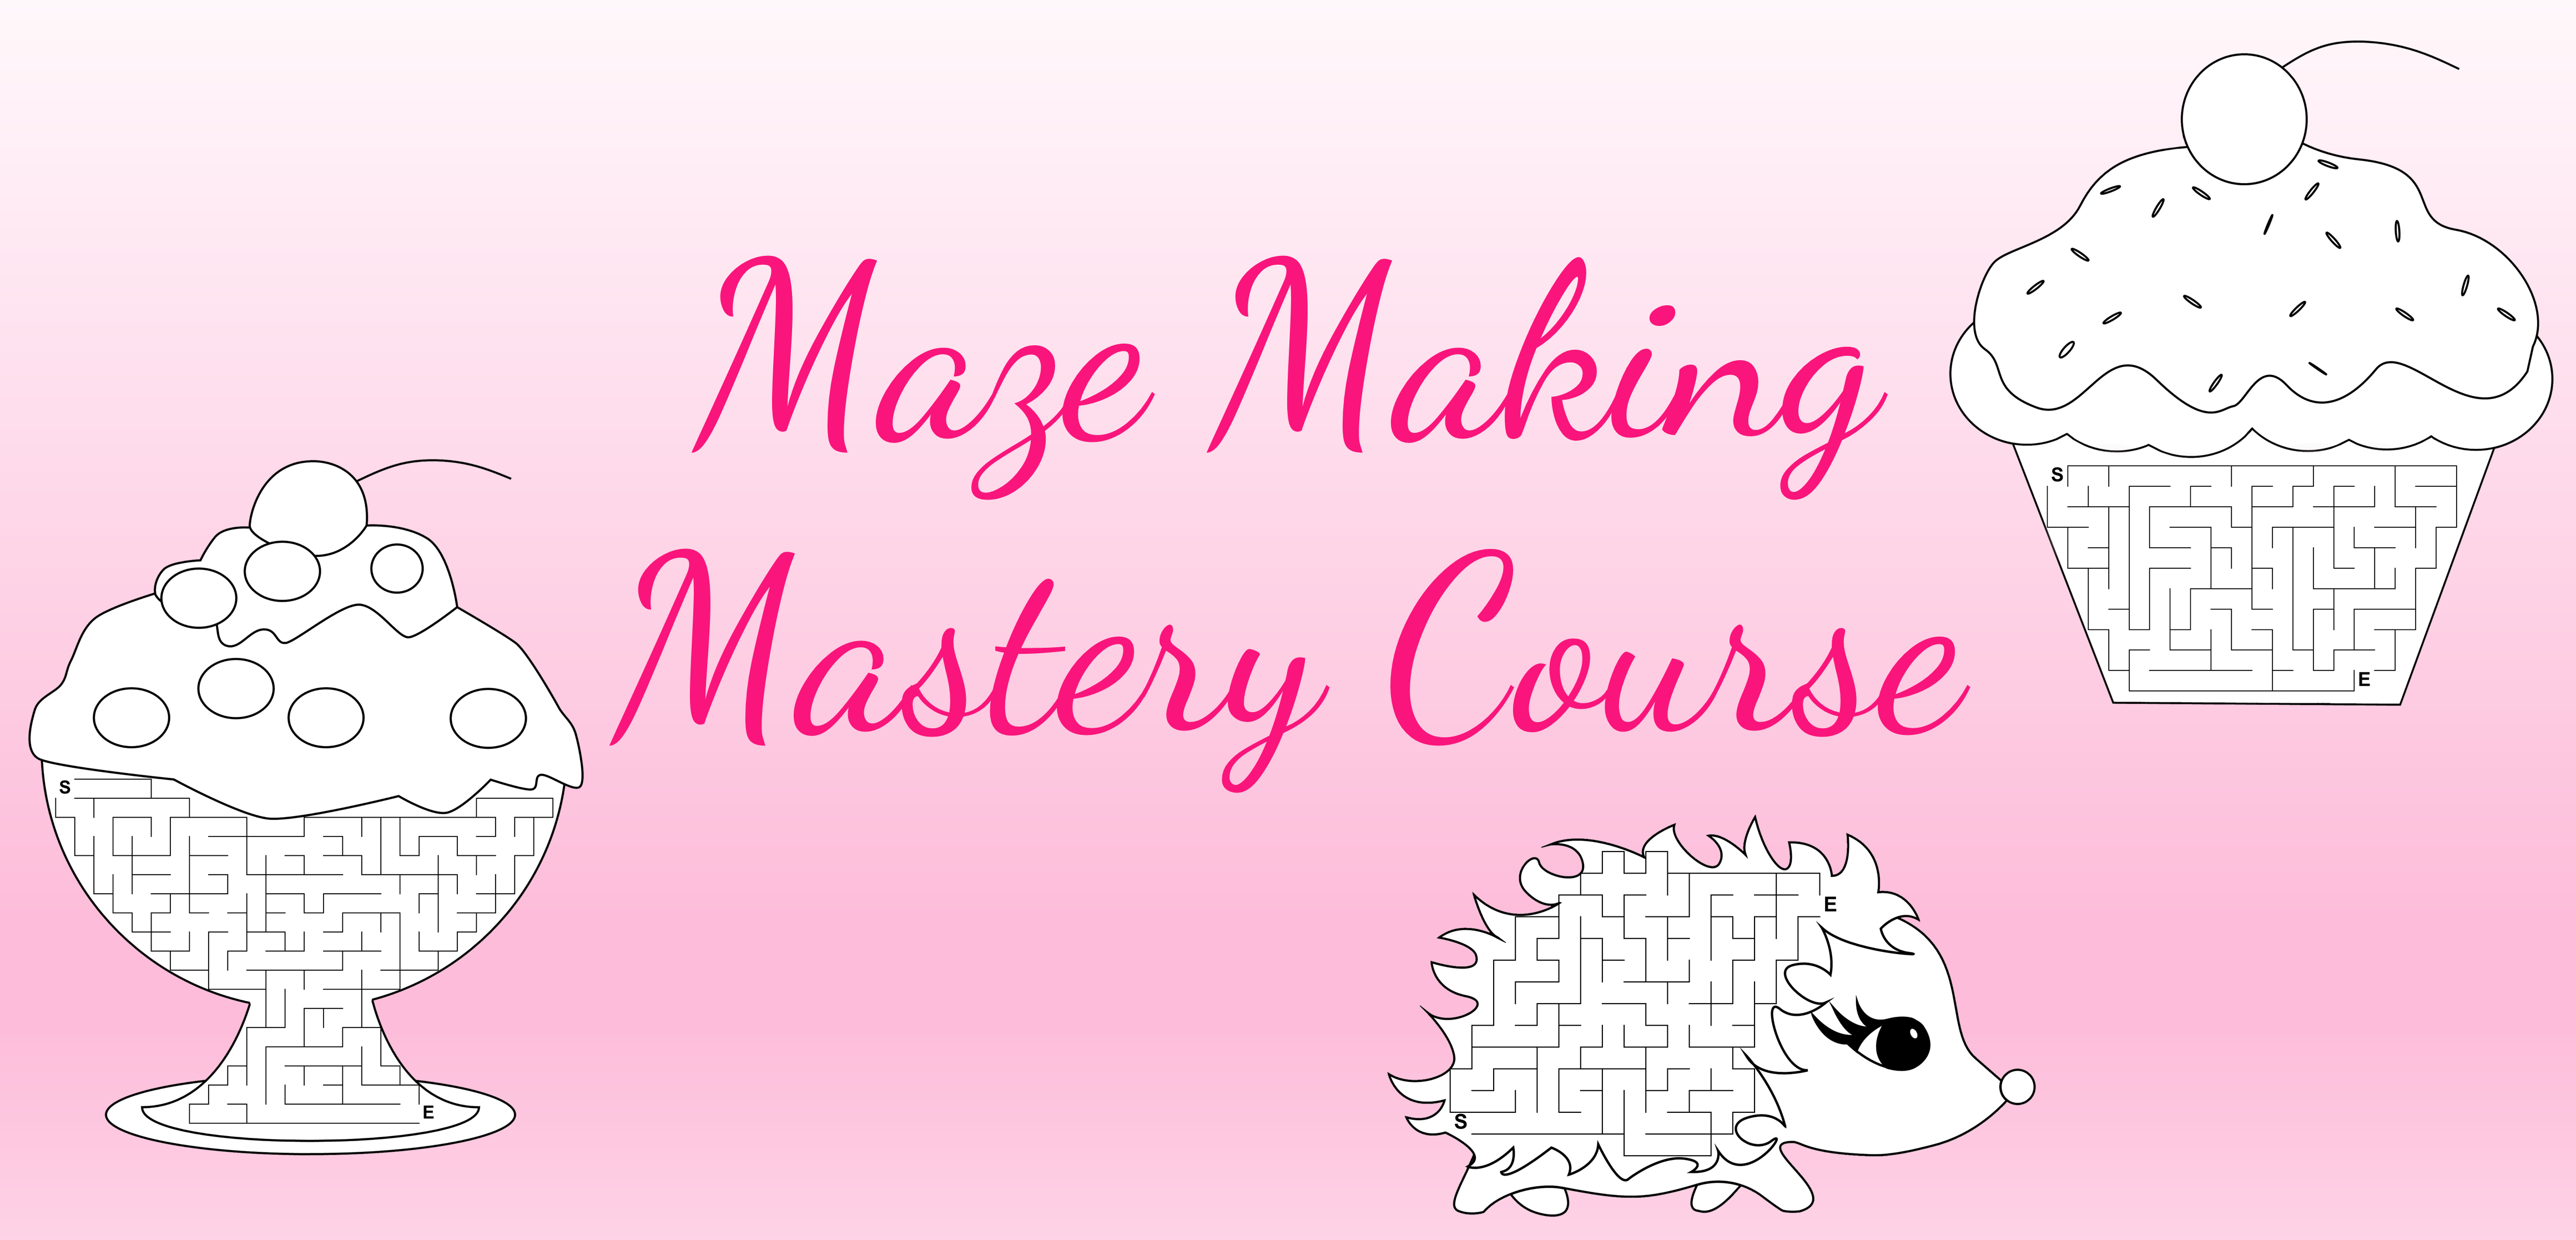 Maze Making Mastery Course Image